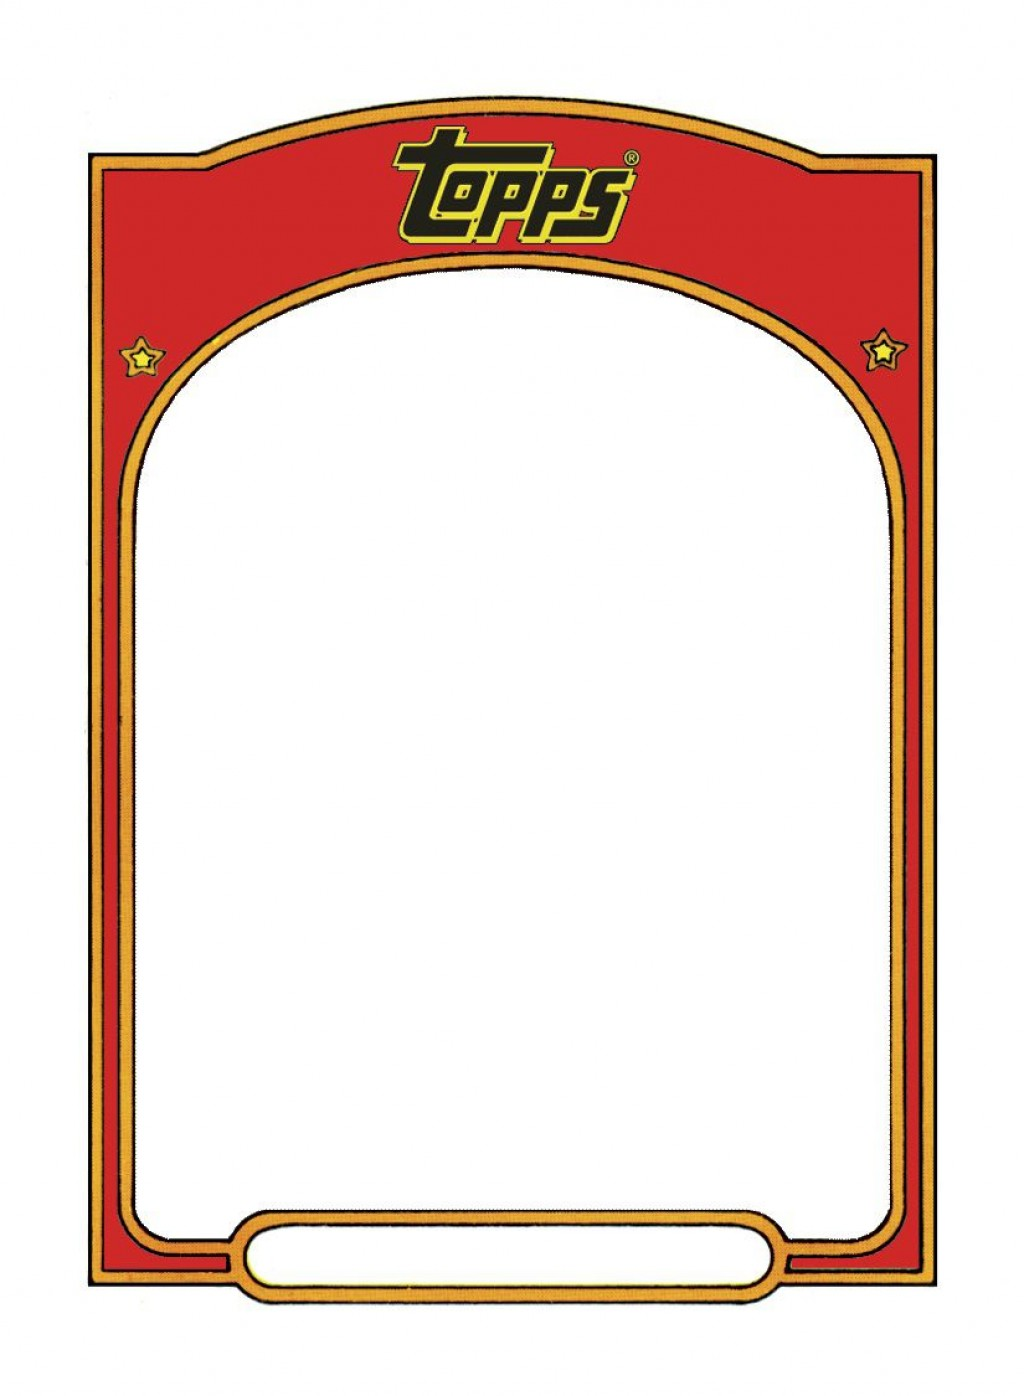 004 Staggering Baseball Card Template Photoshop Sample  Topp FreeLarge